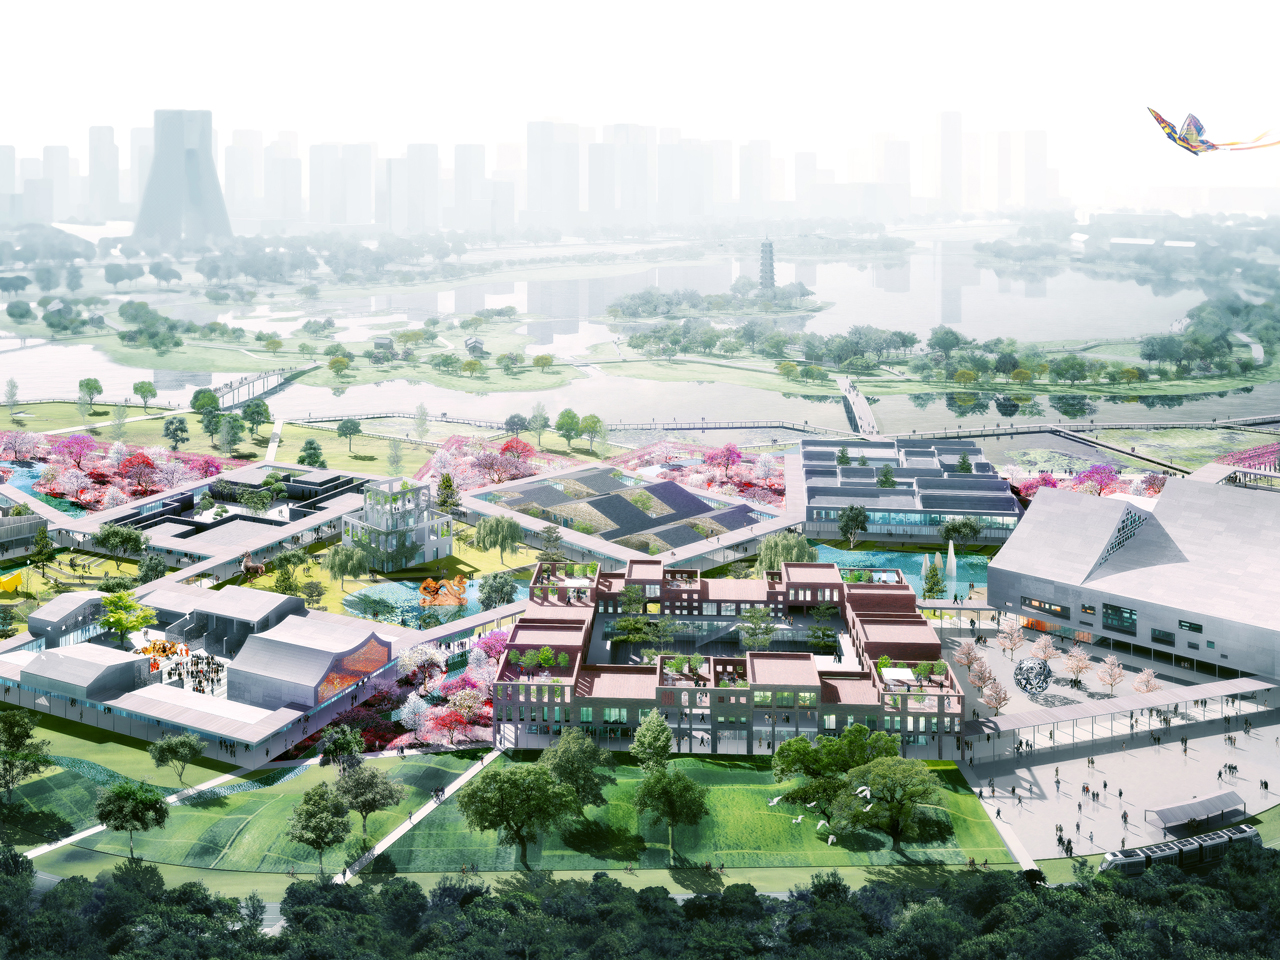 MVRDV in the final round of the competition 'One Center One Garden' for Guangzhou Cultural Center